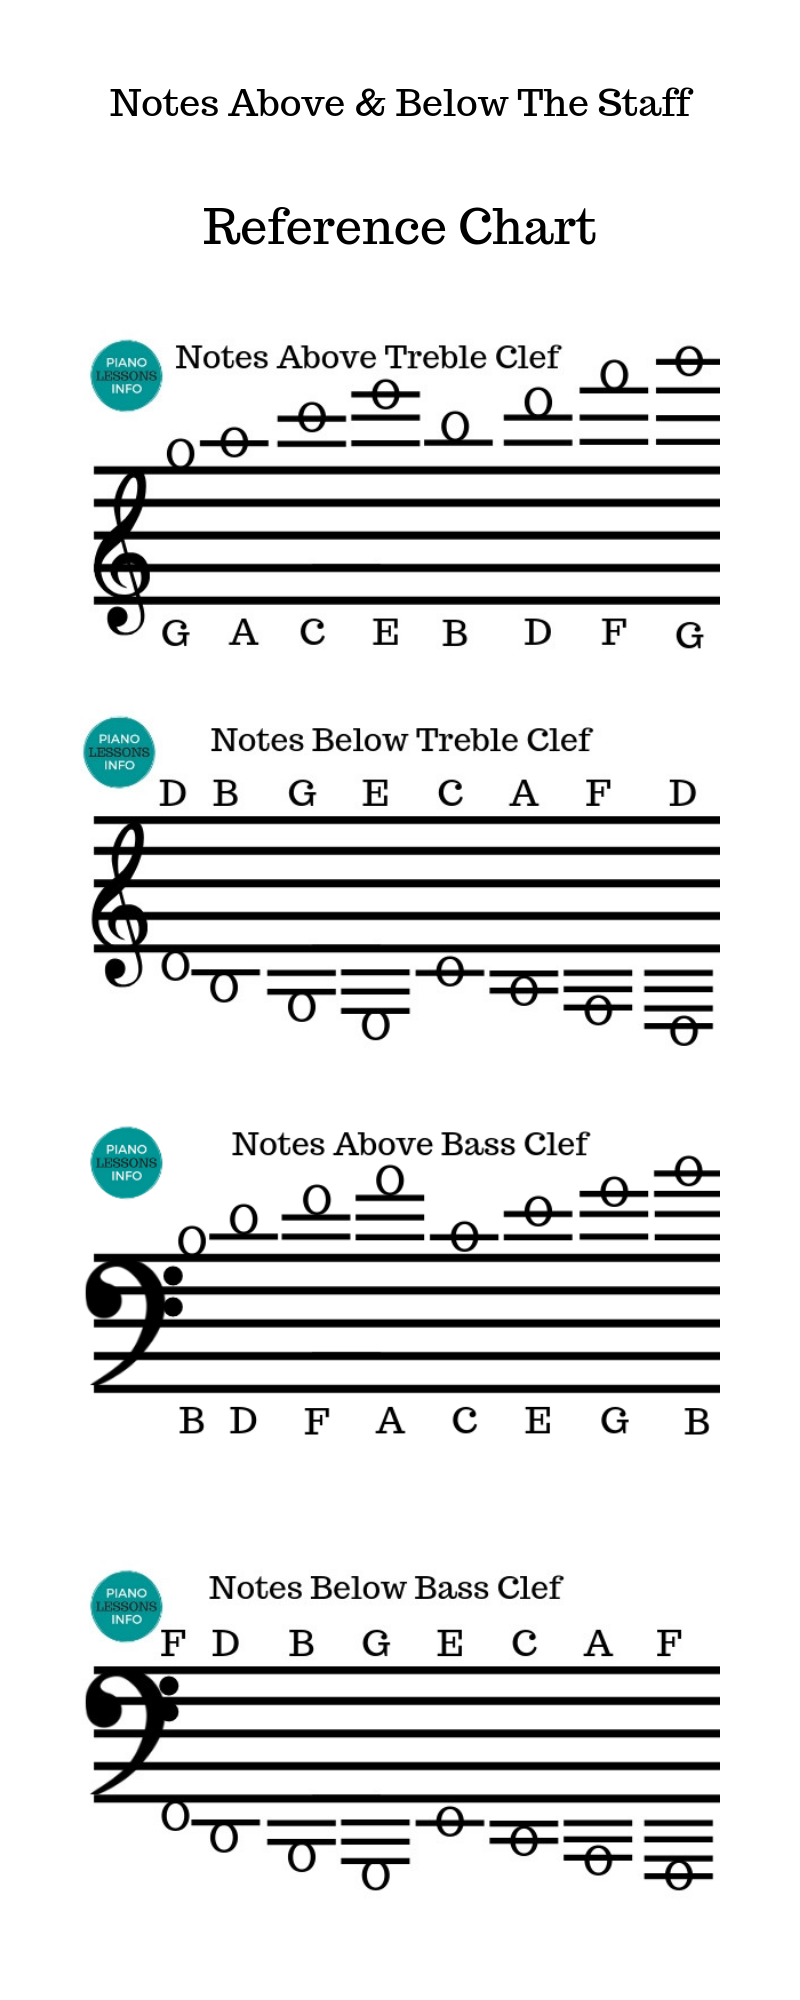 Piano Notes Above And Below The Staff In 2020 Piano Music Piano Chords Chart Reading Music Notes